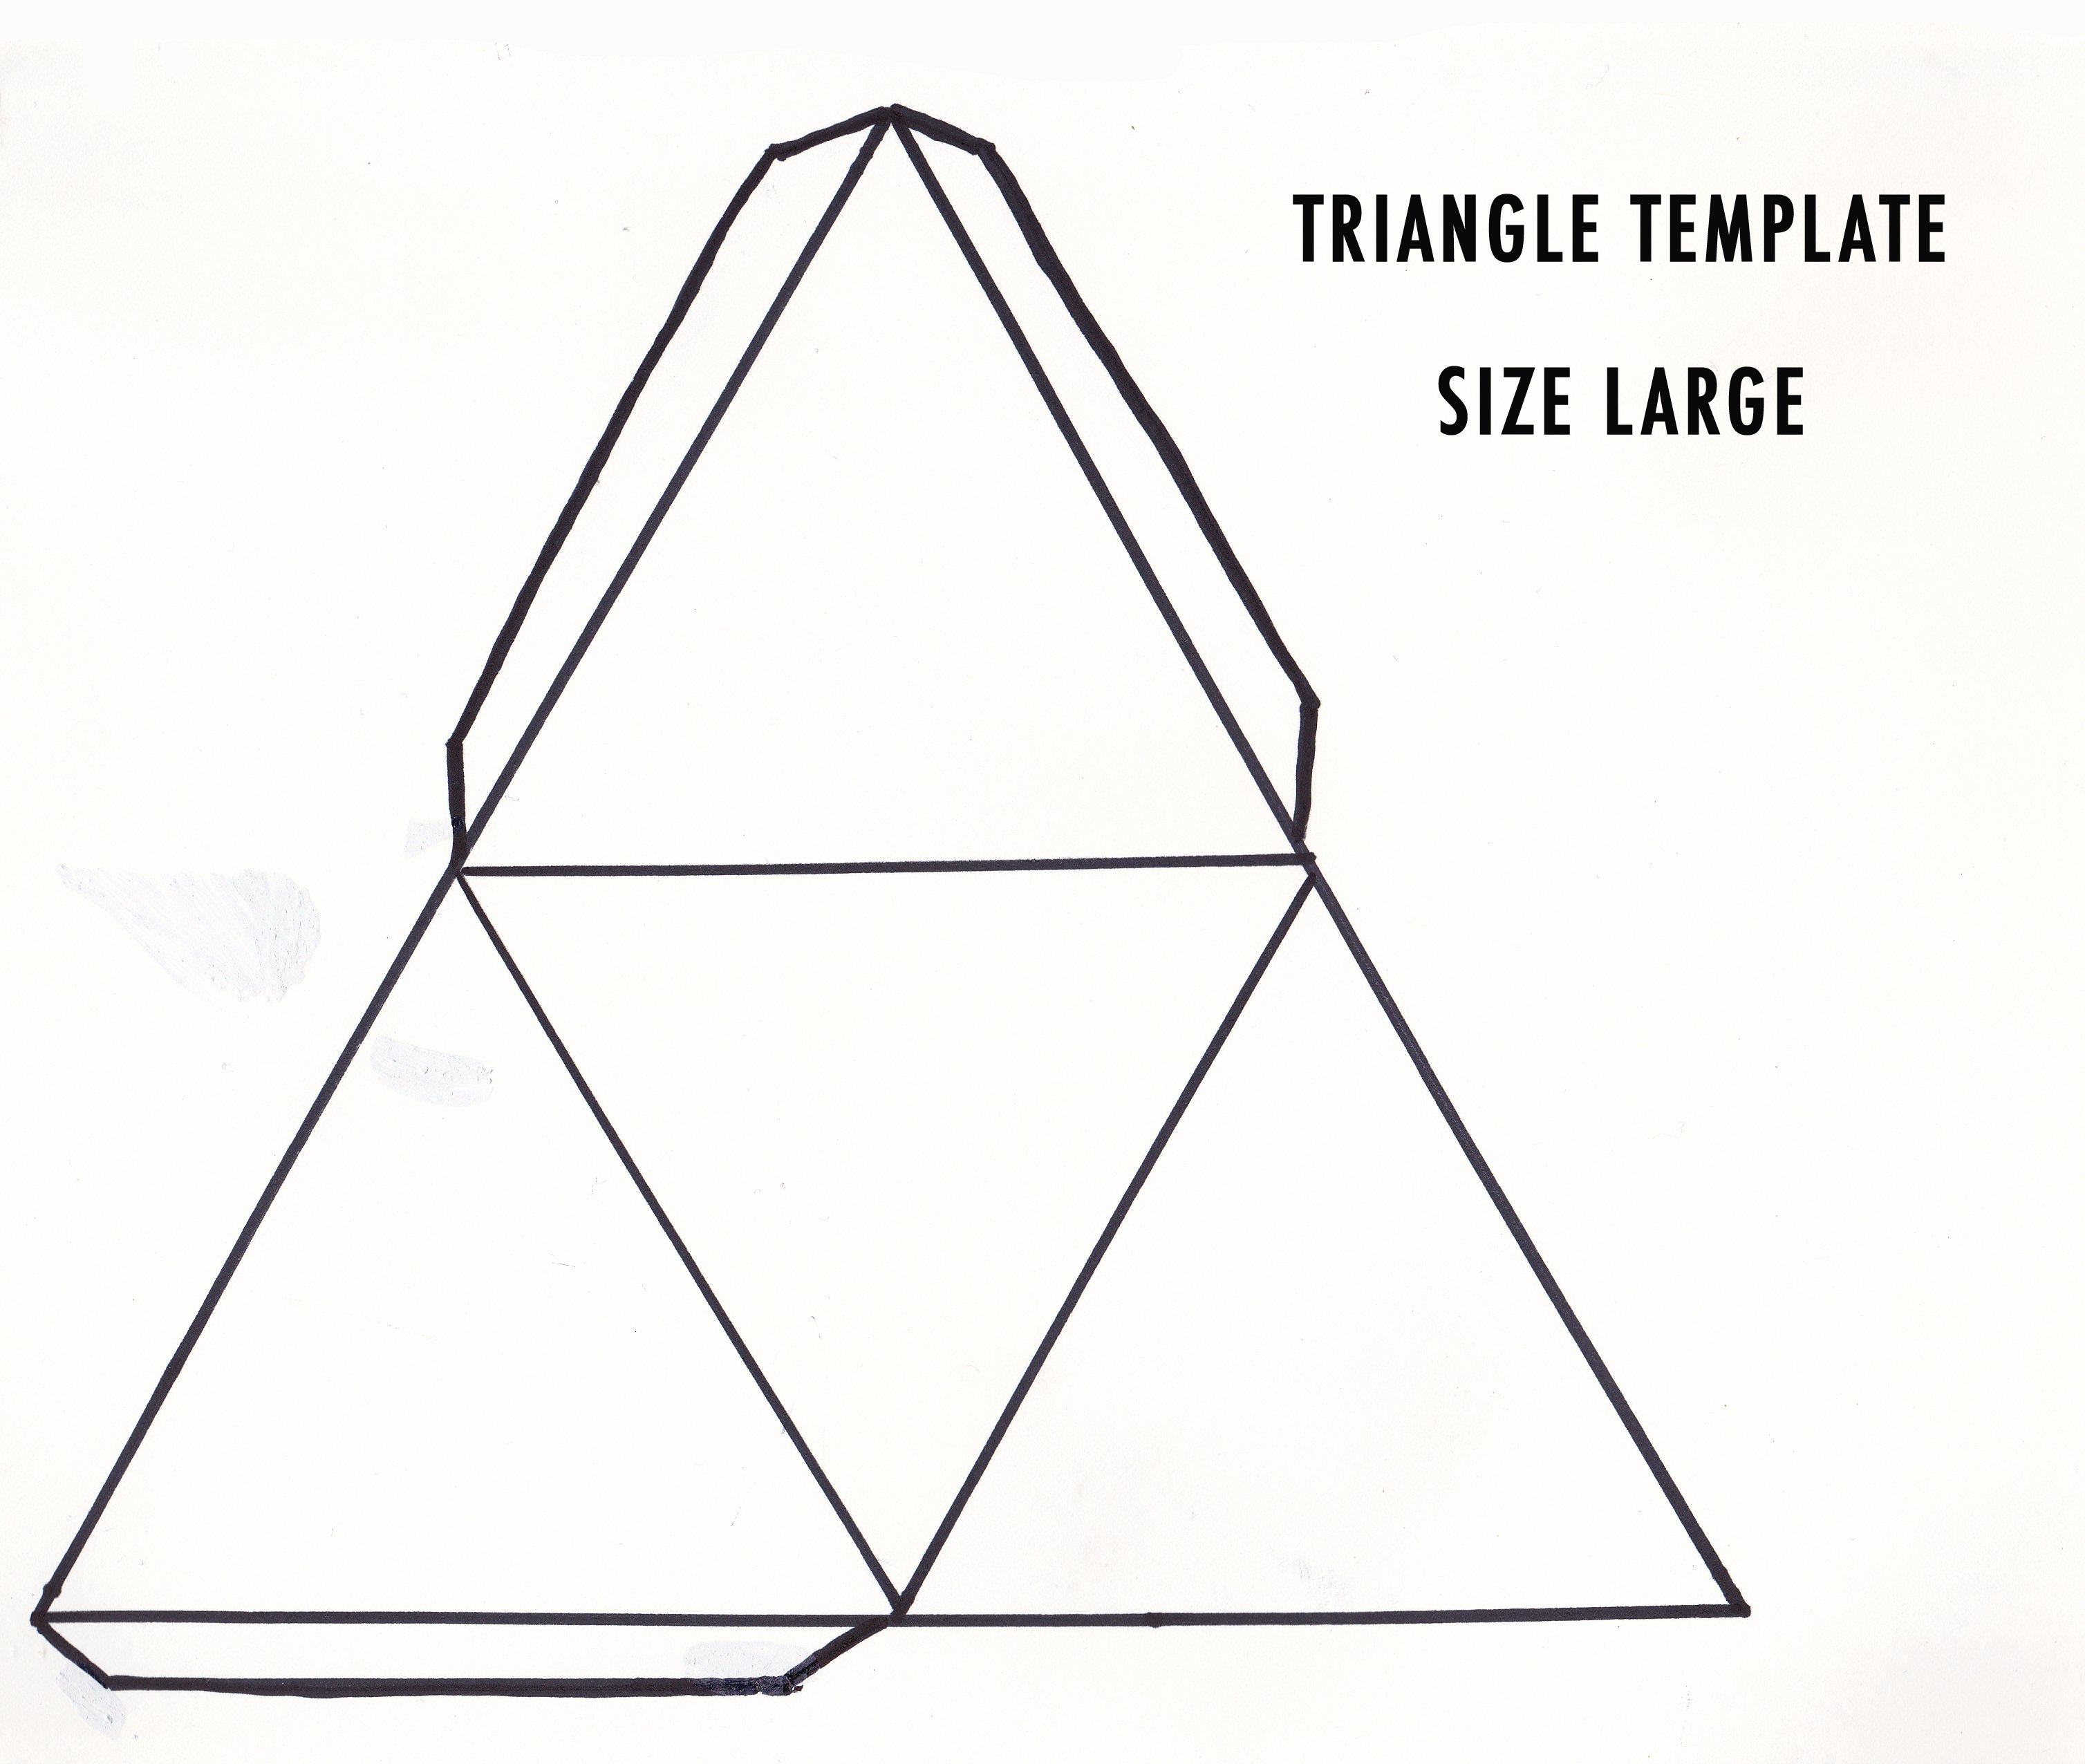 7 Images of 3D Triangle Template Printable